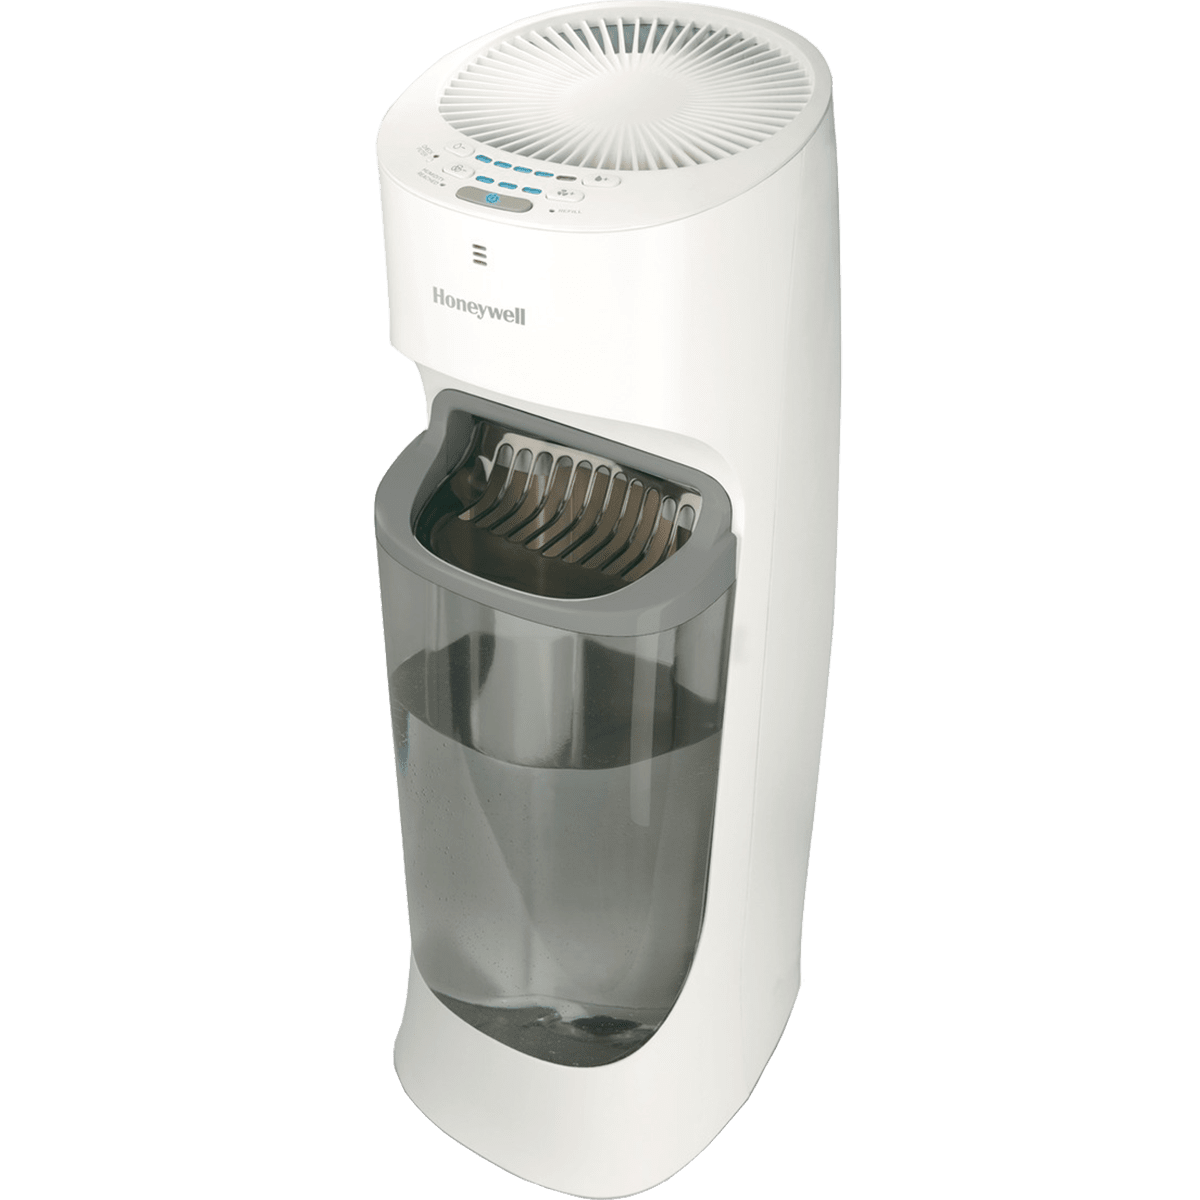 Honeywell Top Fill Tower Humidifier - White main